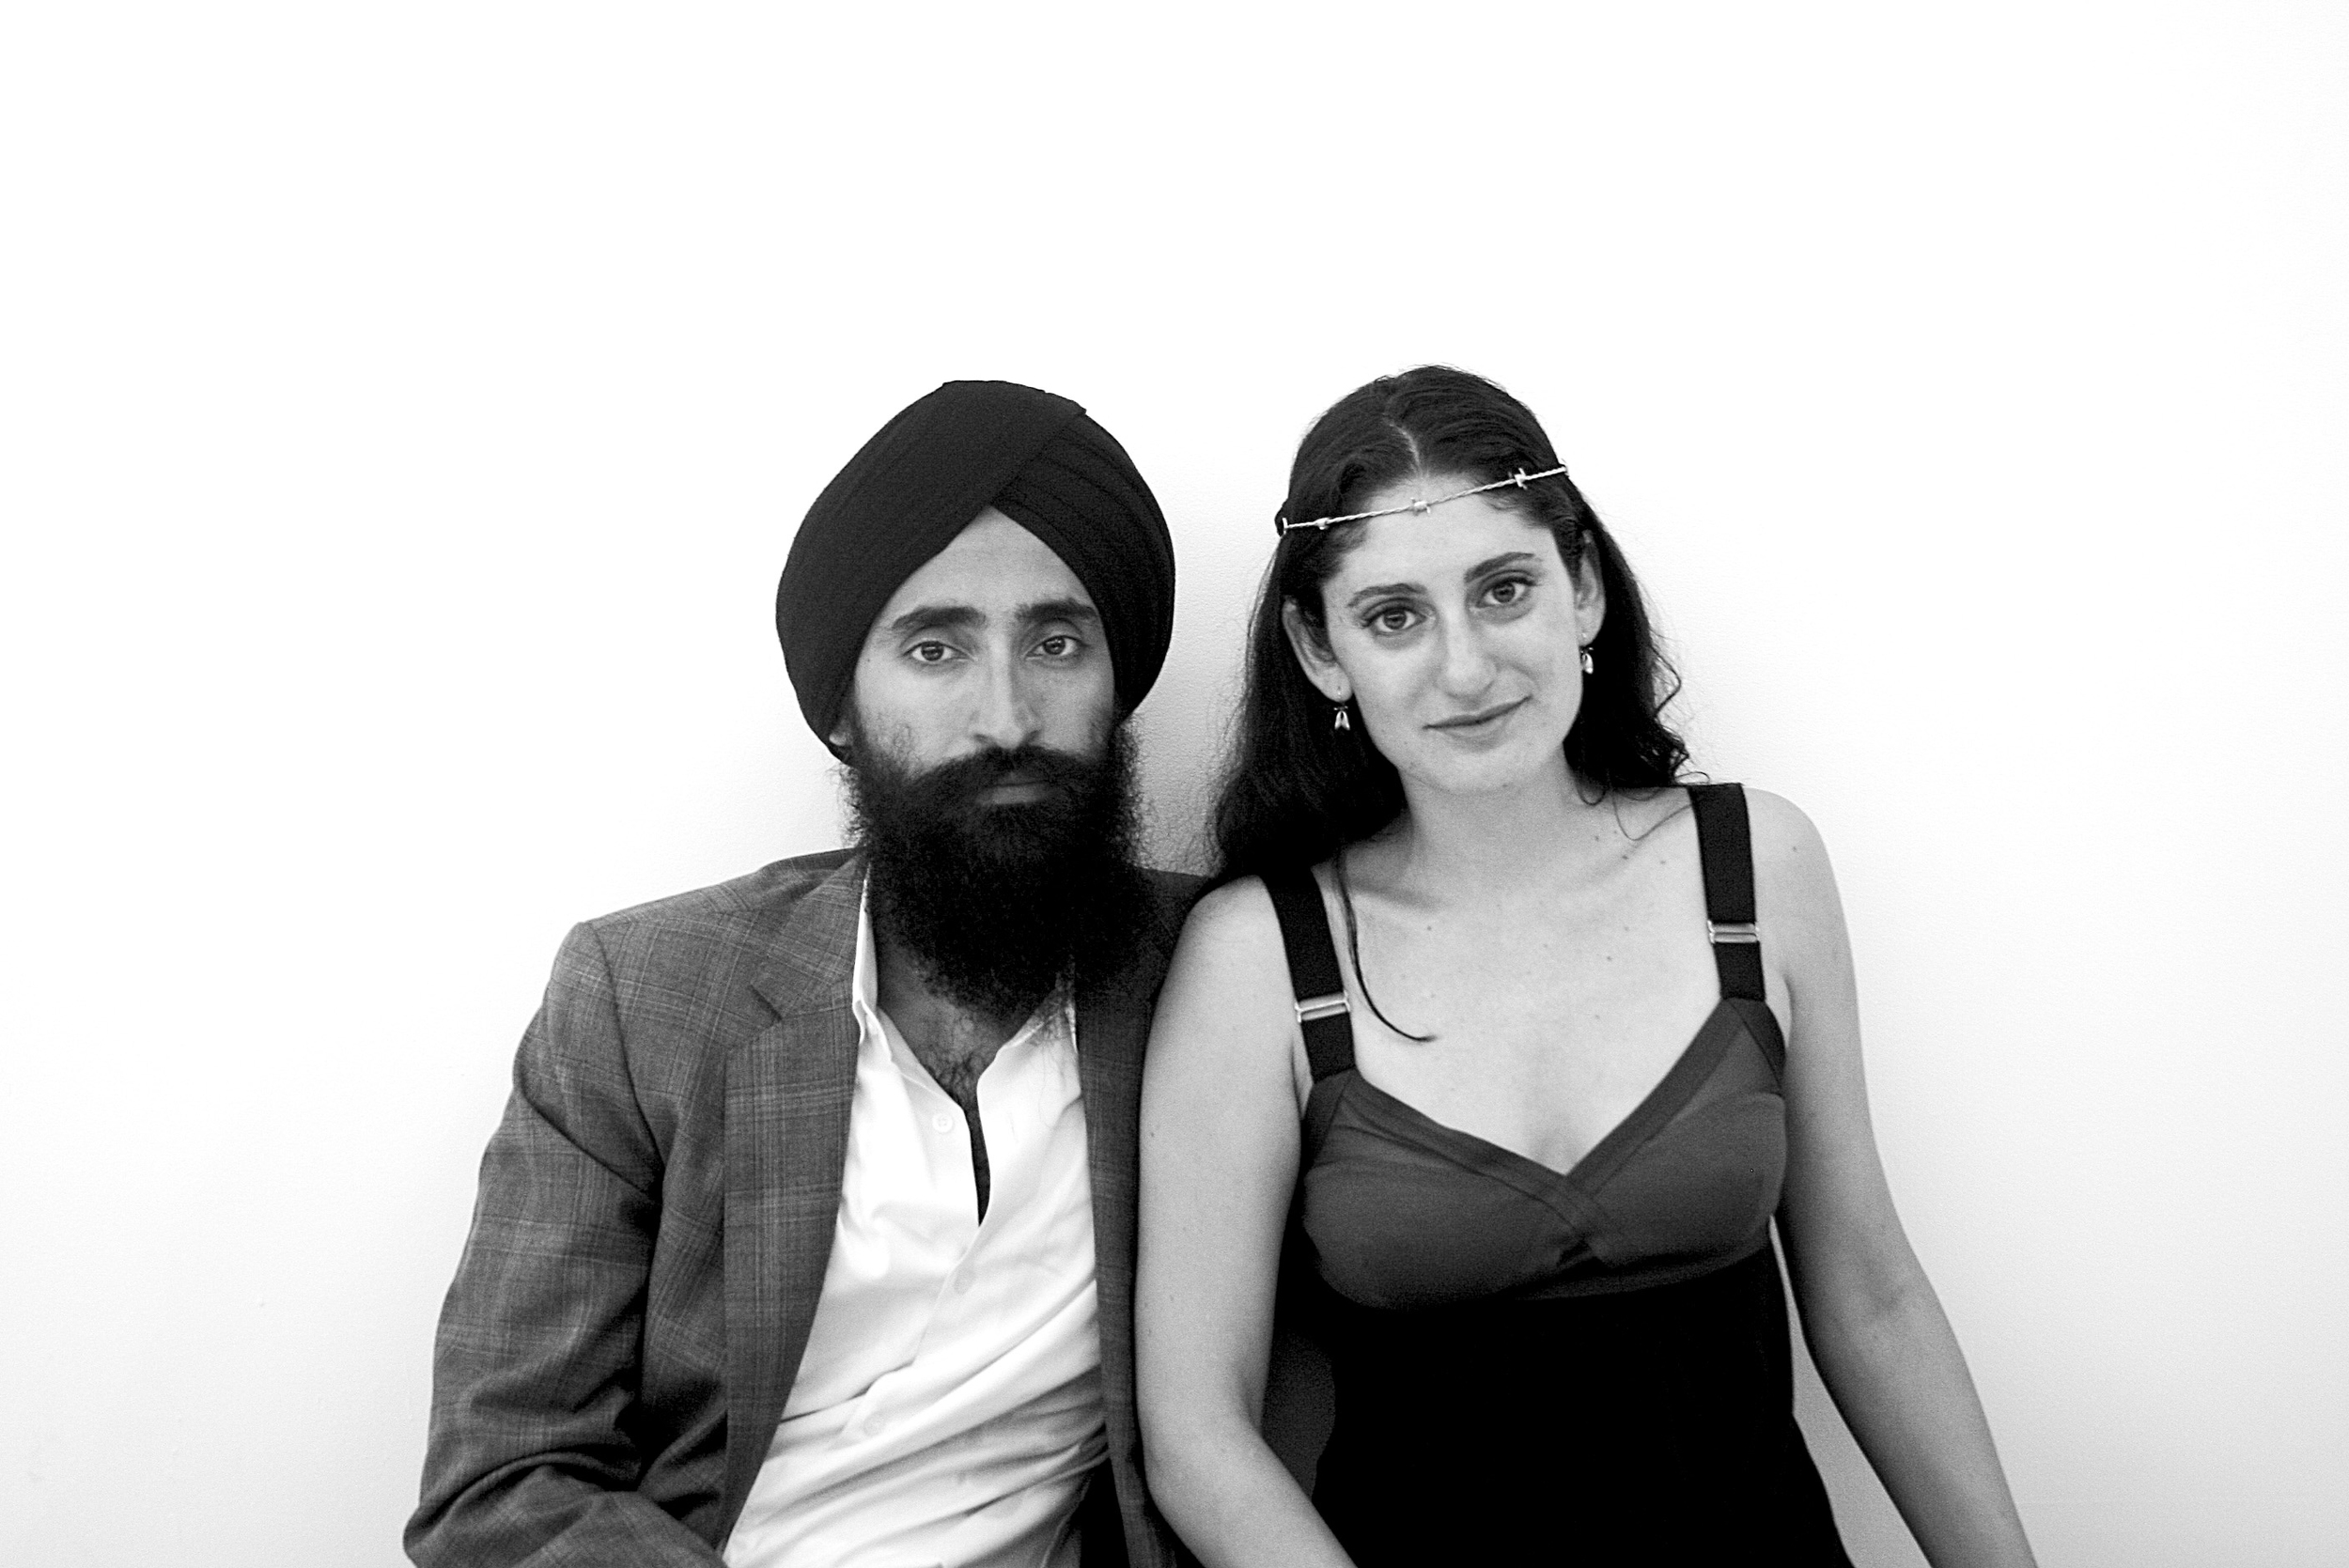 Designer and actor Waris Ahluwalia with designer and filmmaker Arden Wohl.